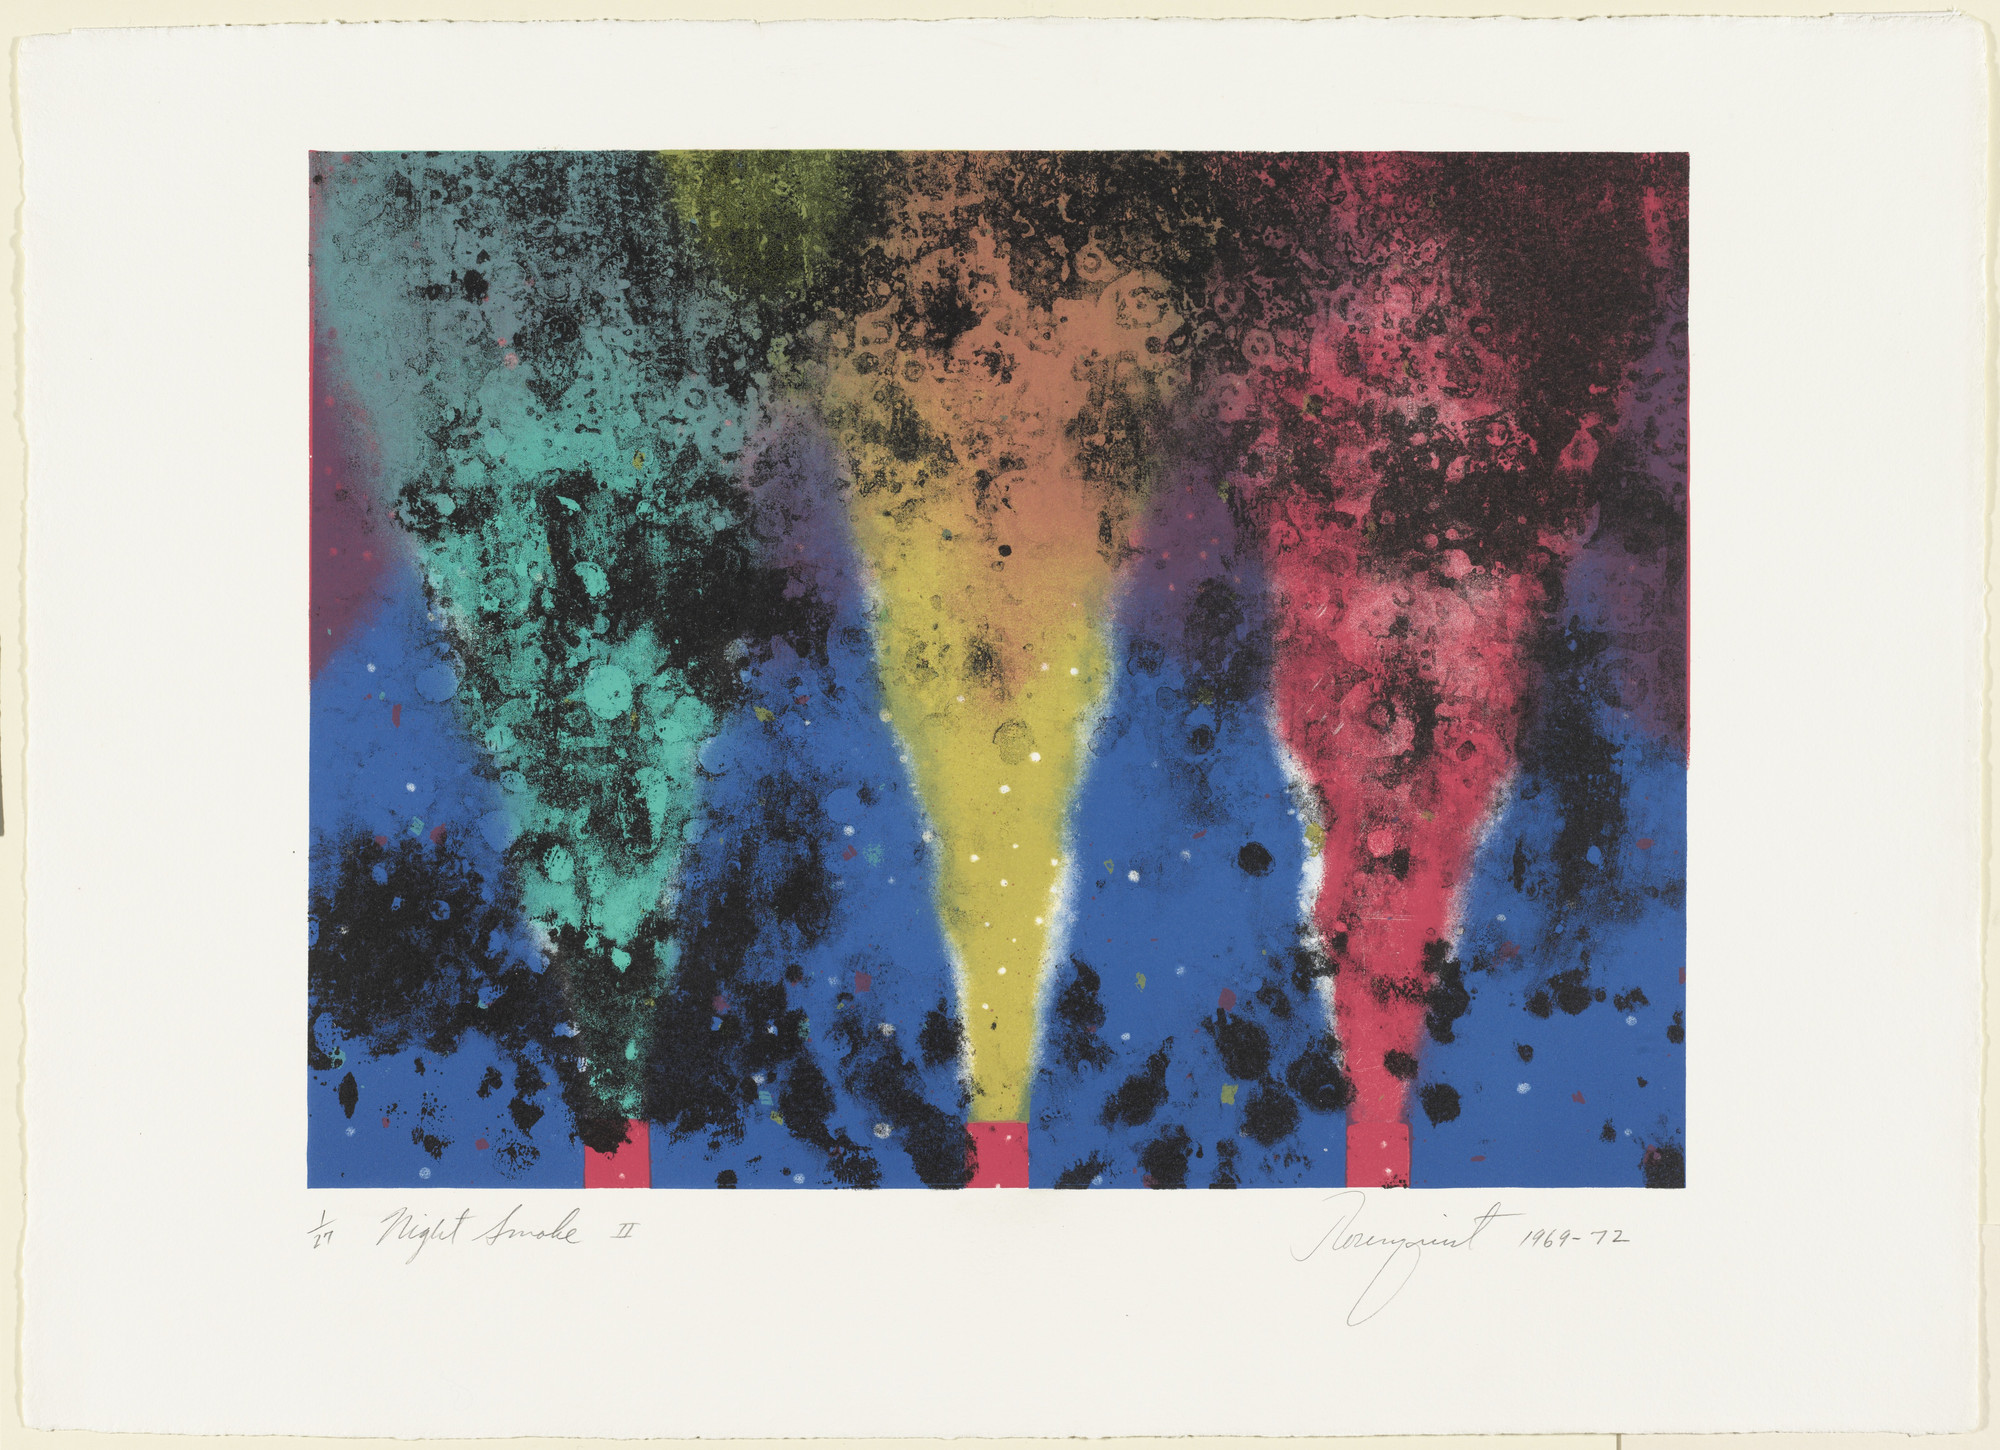 James Rosenquist. Night Smoke II. 1969-72